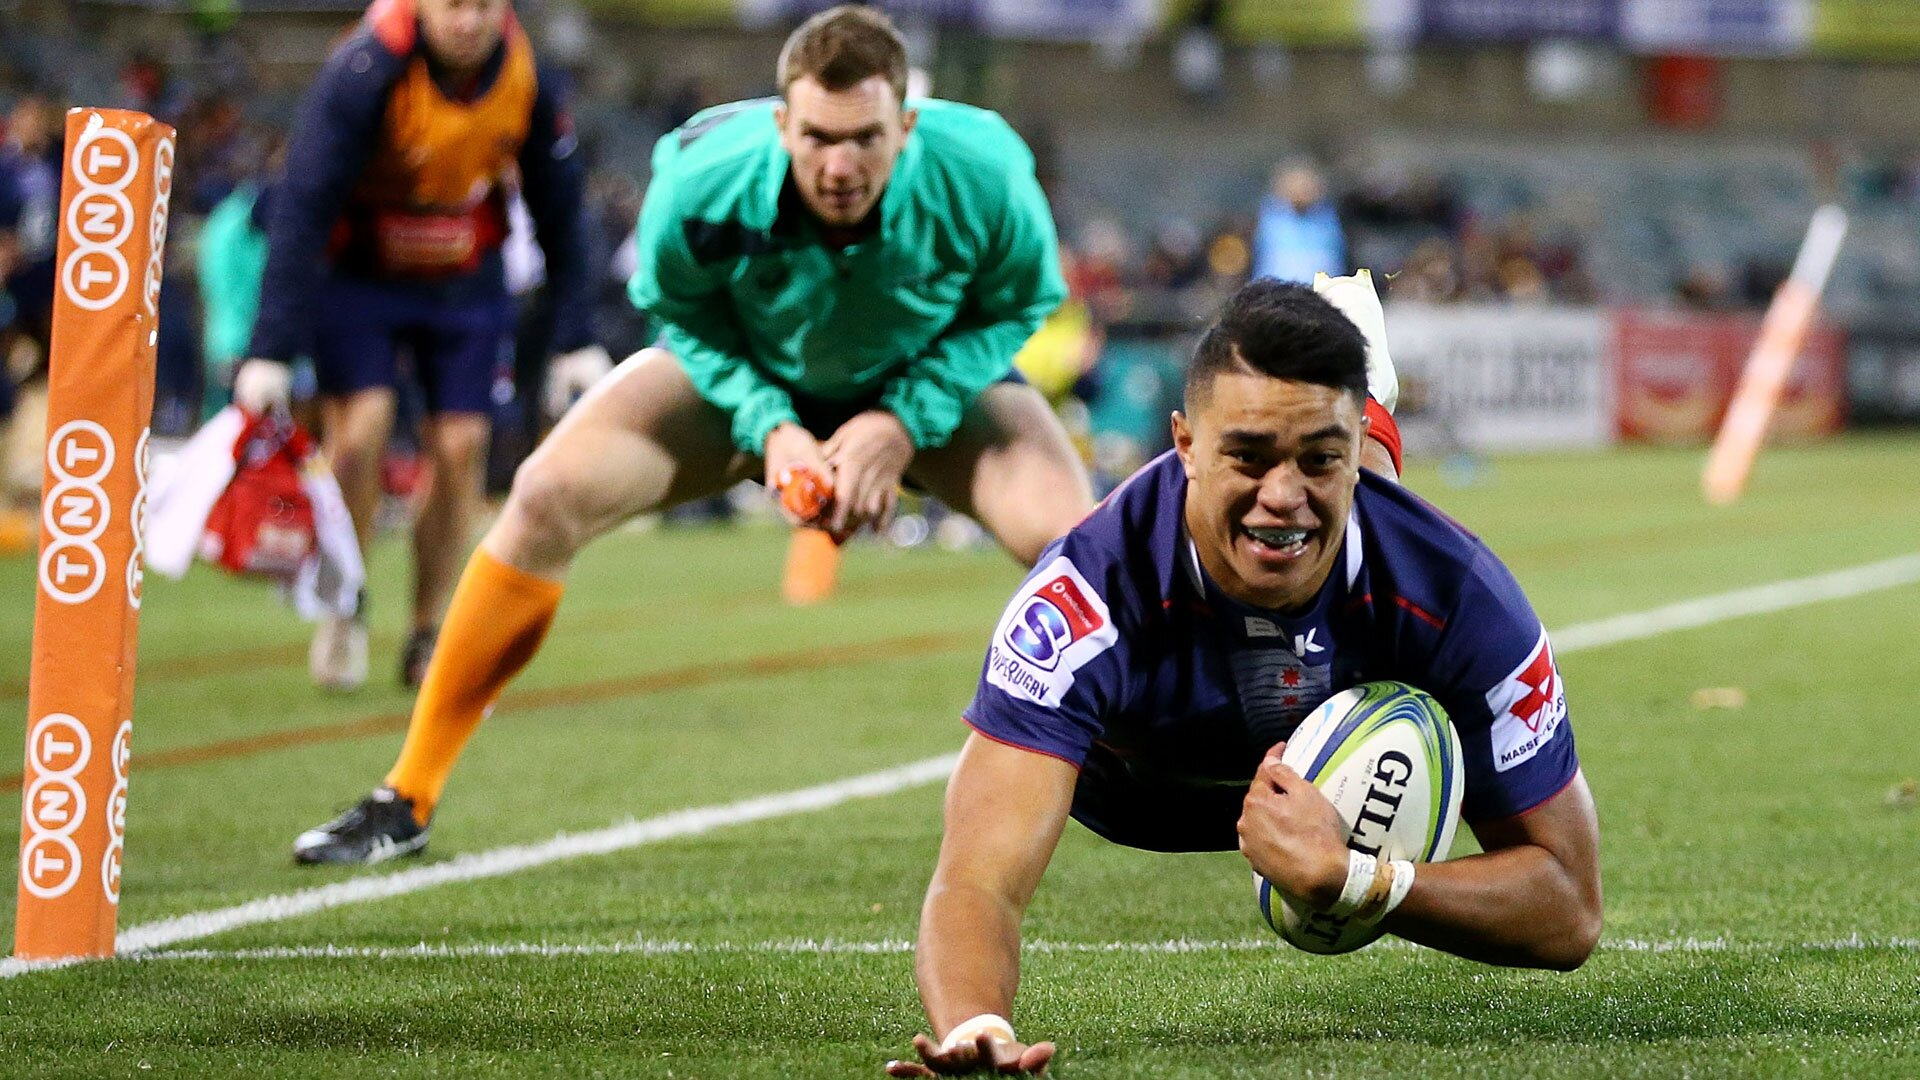 Form Rebels winger to sit out match with Stormers